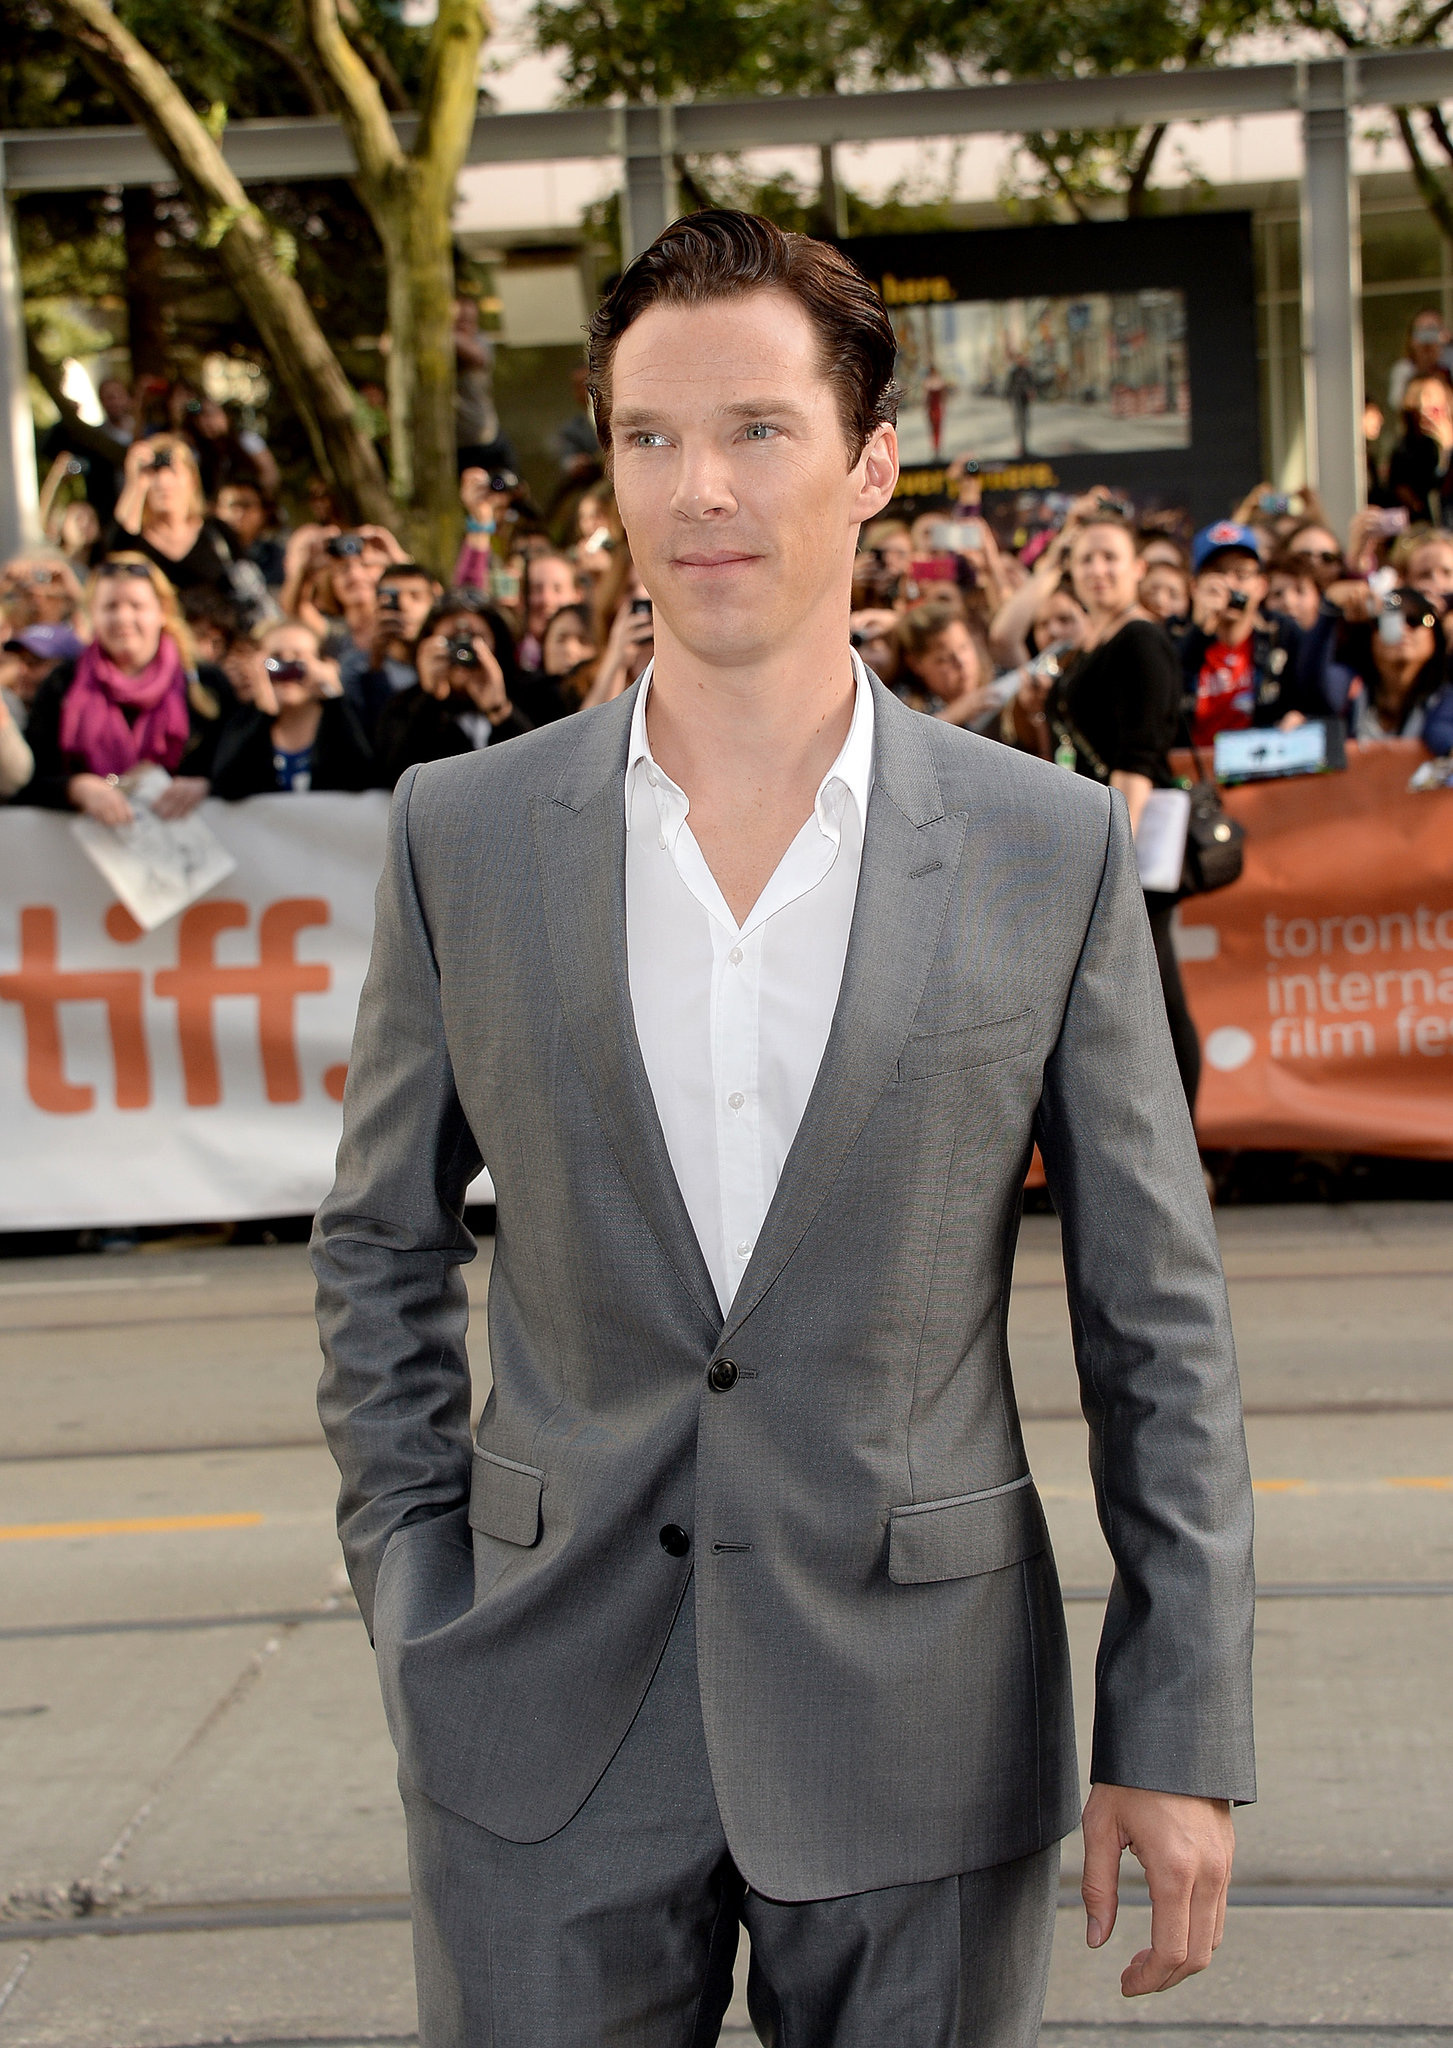 Benedict Cumberbatch showed up for the premiere of 12 Years a Slave.